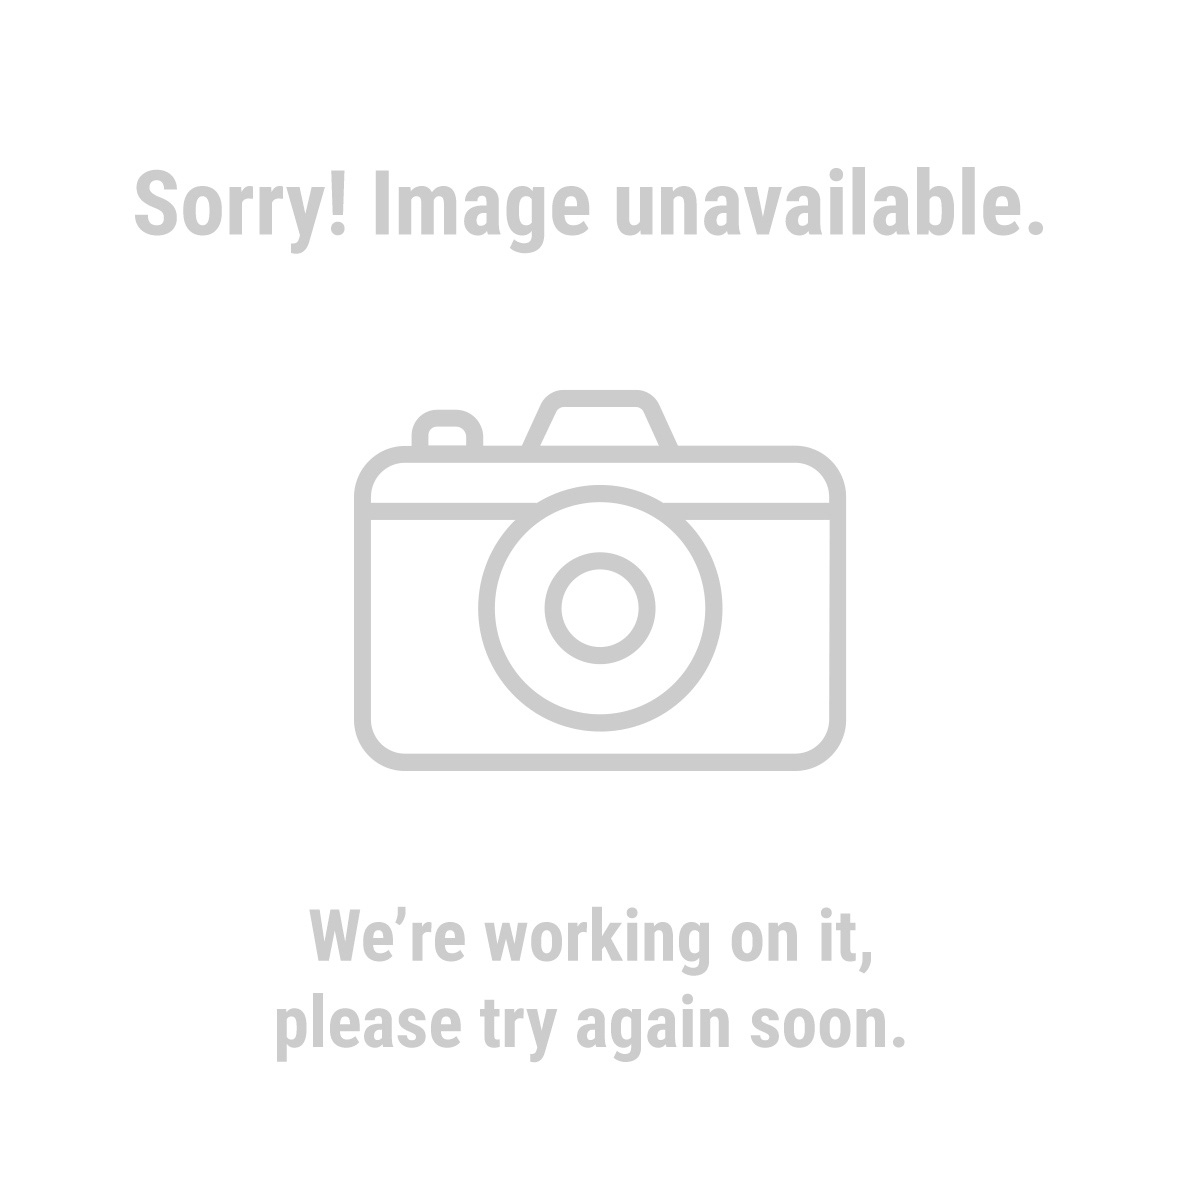 HFT 30037 1/2 In. Grommet Installation Kit 103 Pc